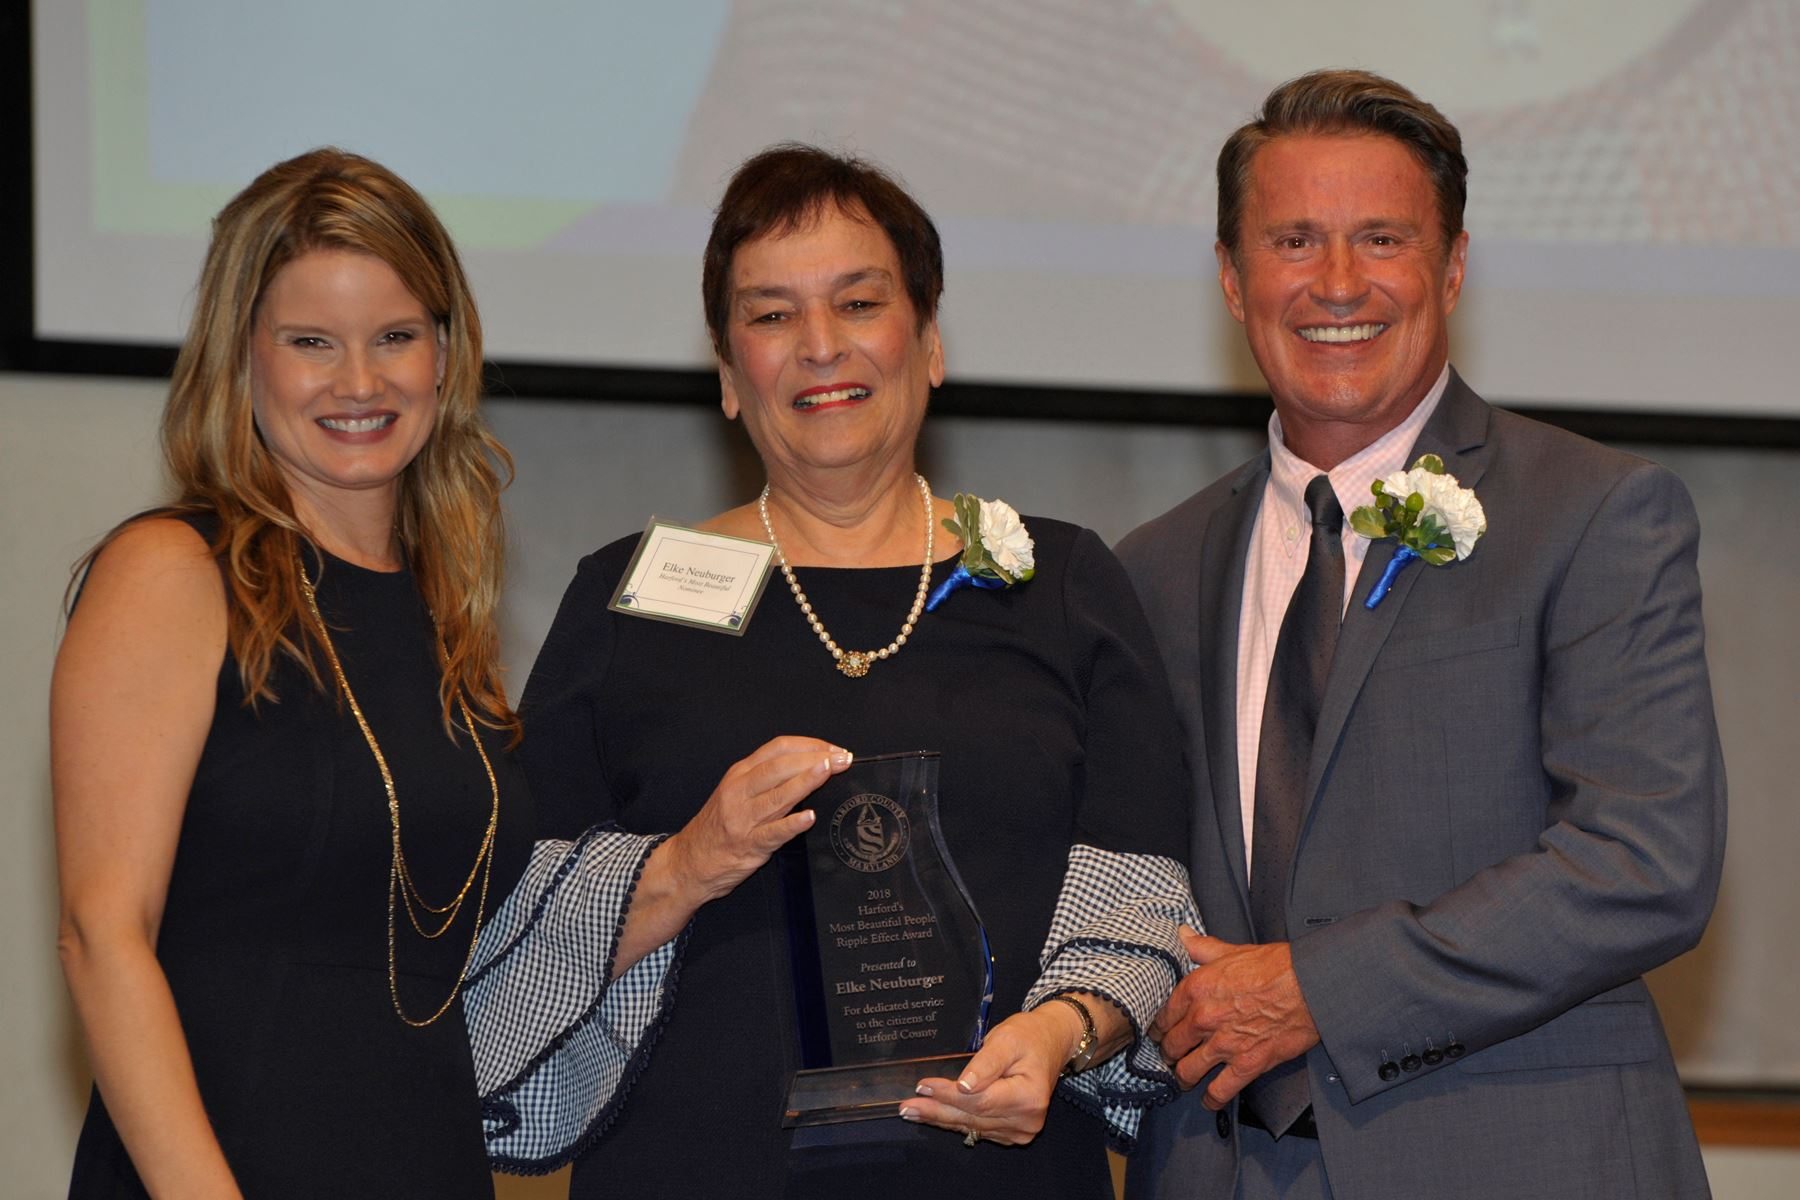 Harford's Most Beautiful Ripple Effect Award Recipient Elke Neuburger